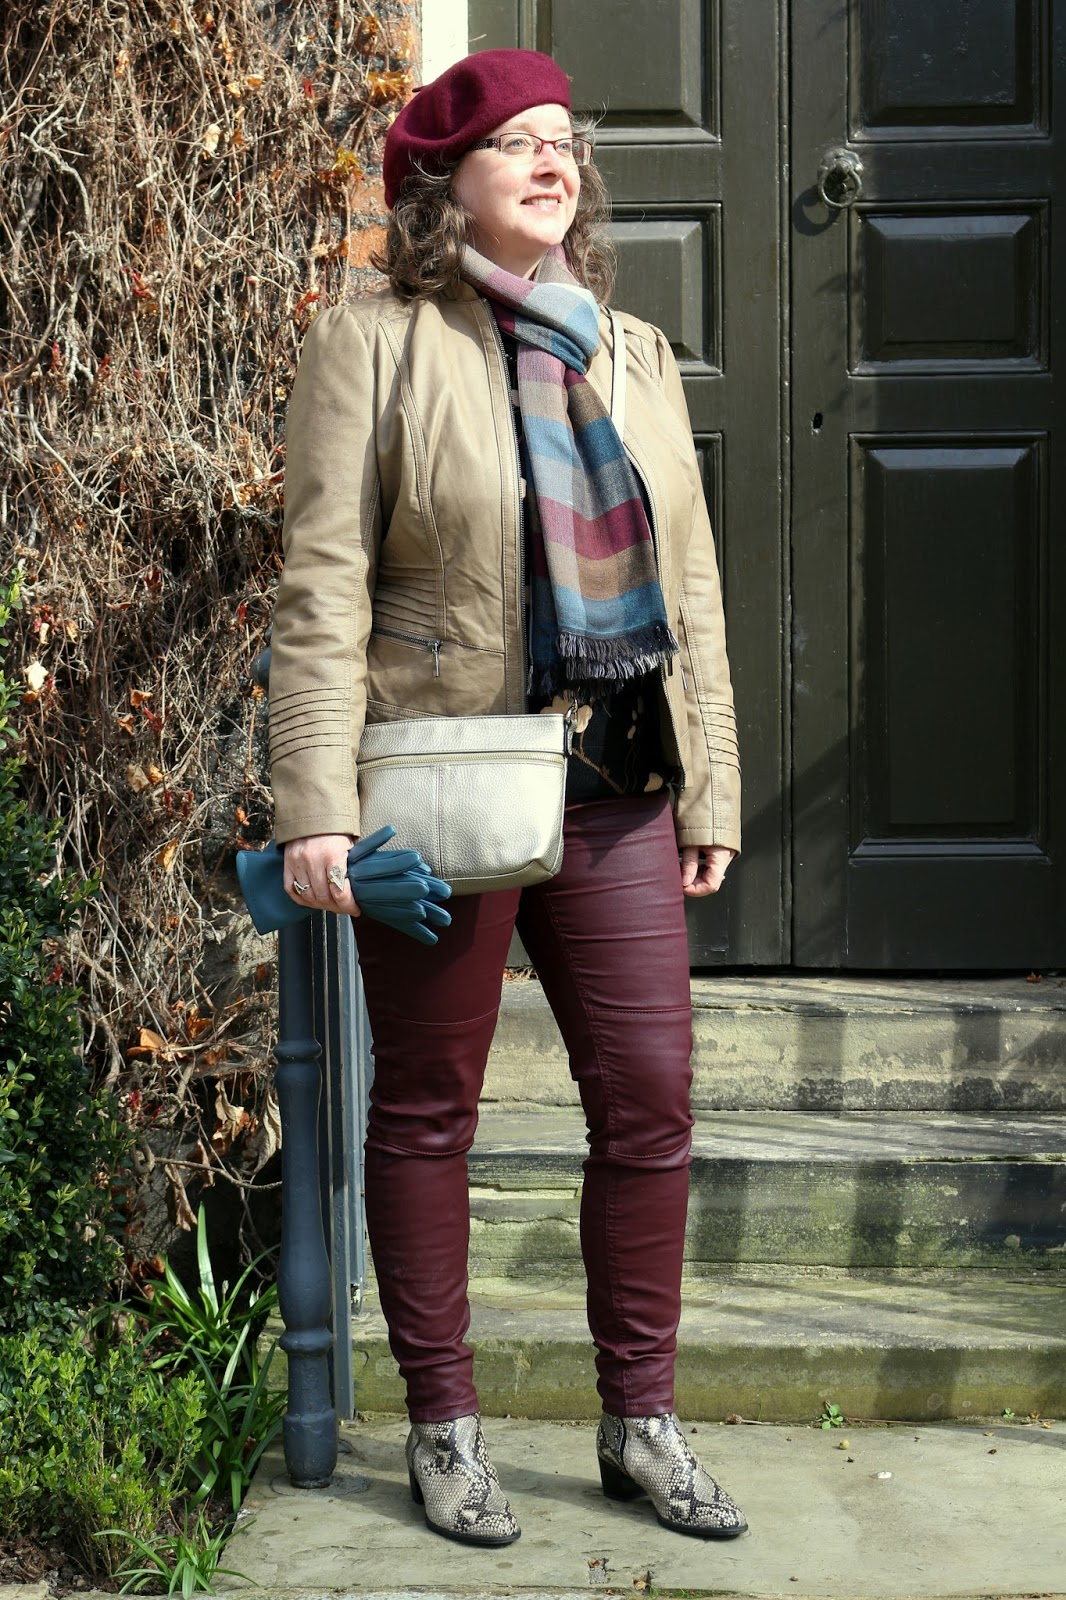 Stylish Look on a Budget; Faux Leather Jacket, Burgundy Coated Biker Jeans, Snakeskin Boots, beret, teal gloves | Petite Silver Vixen, over 40 style